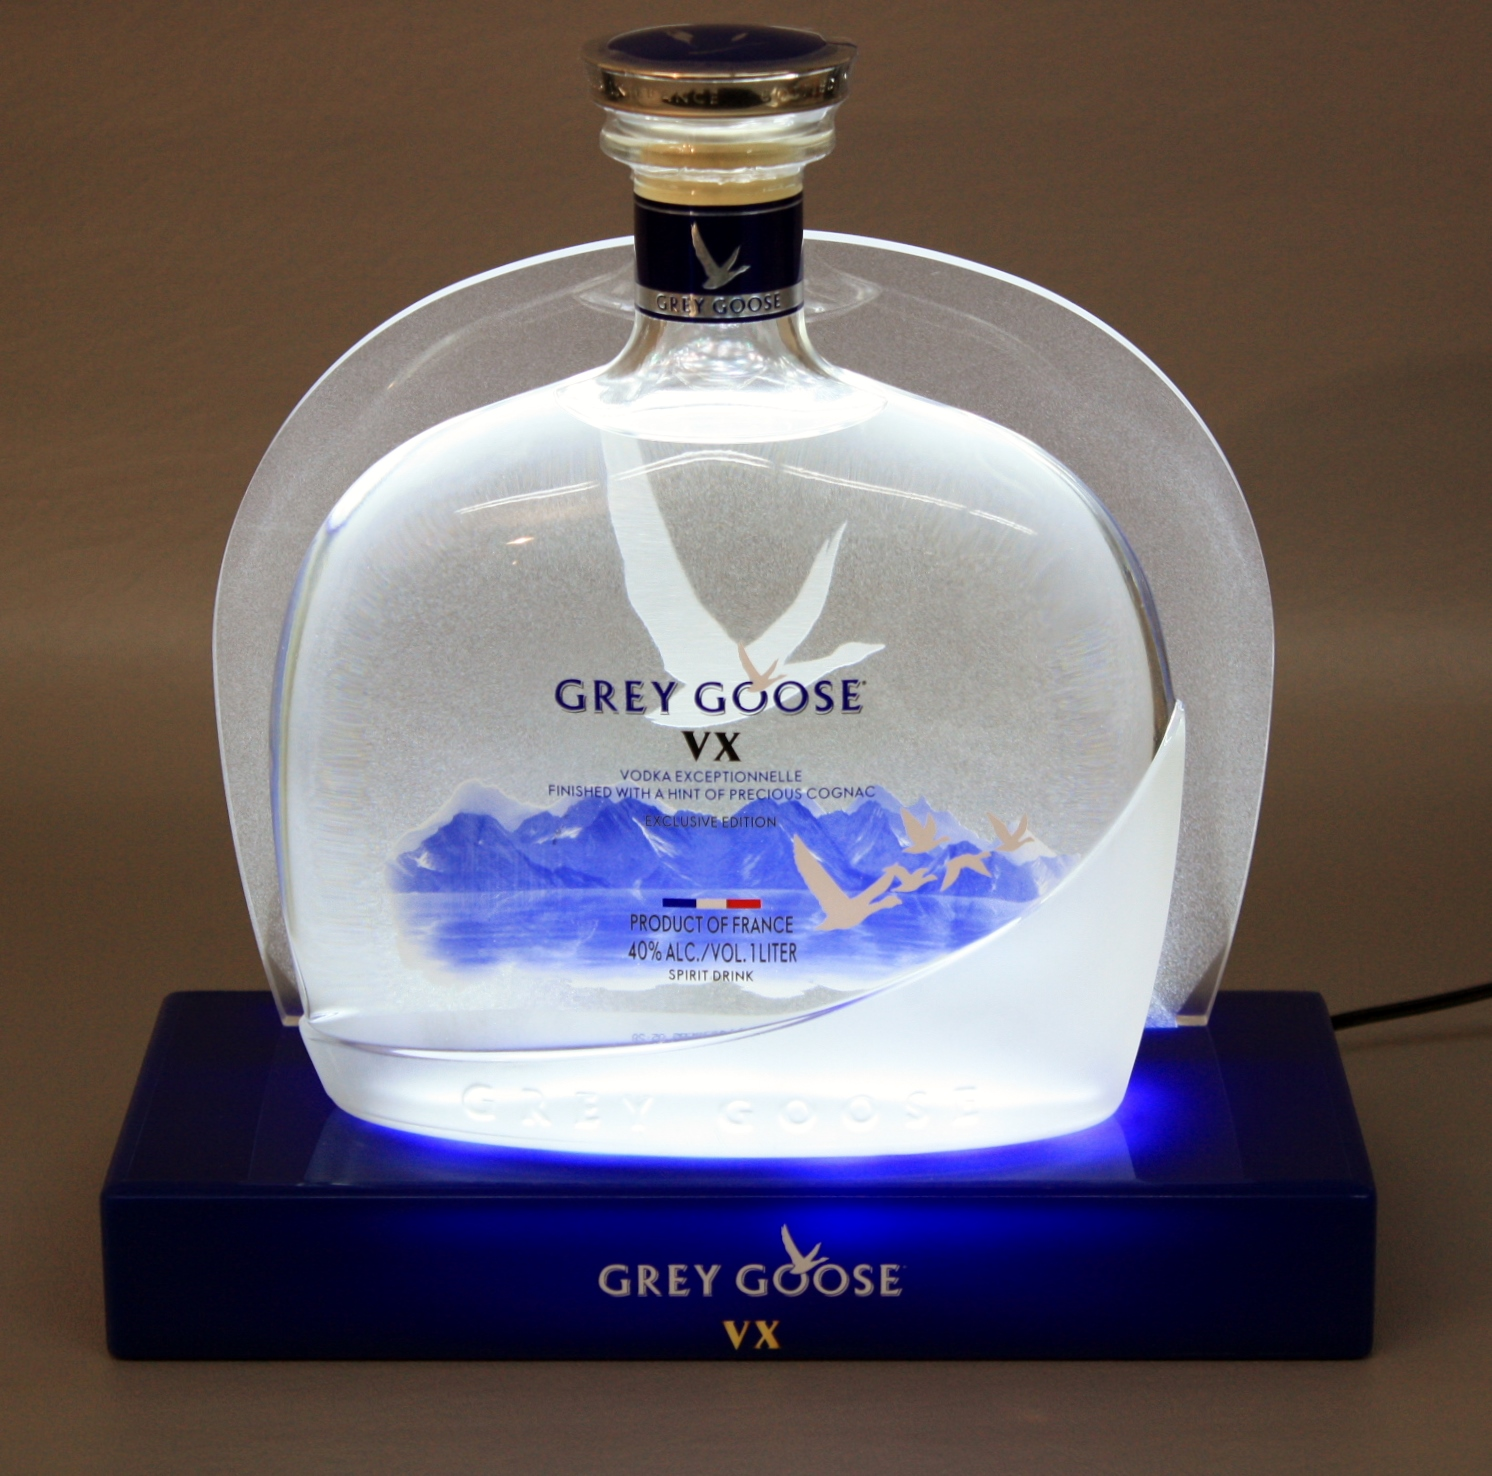 Grey Goose GlorifierNew Shaped Bottle Blue Base Etched Acrylic Back Panel.JPG